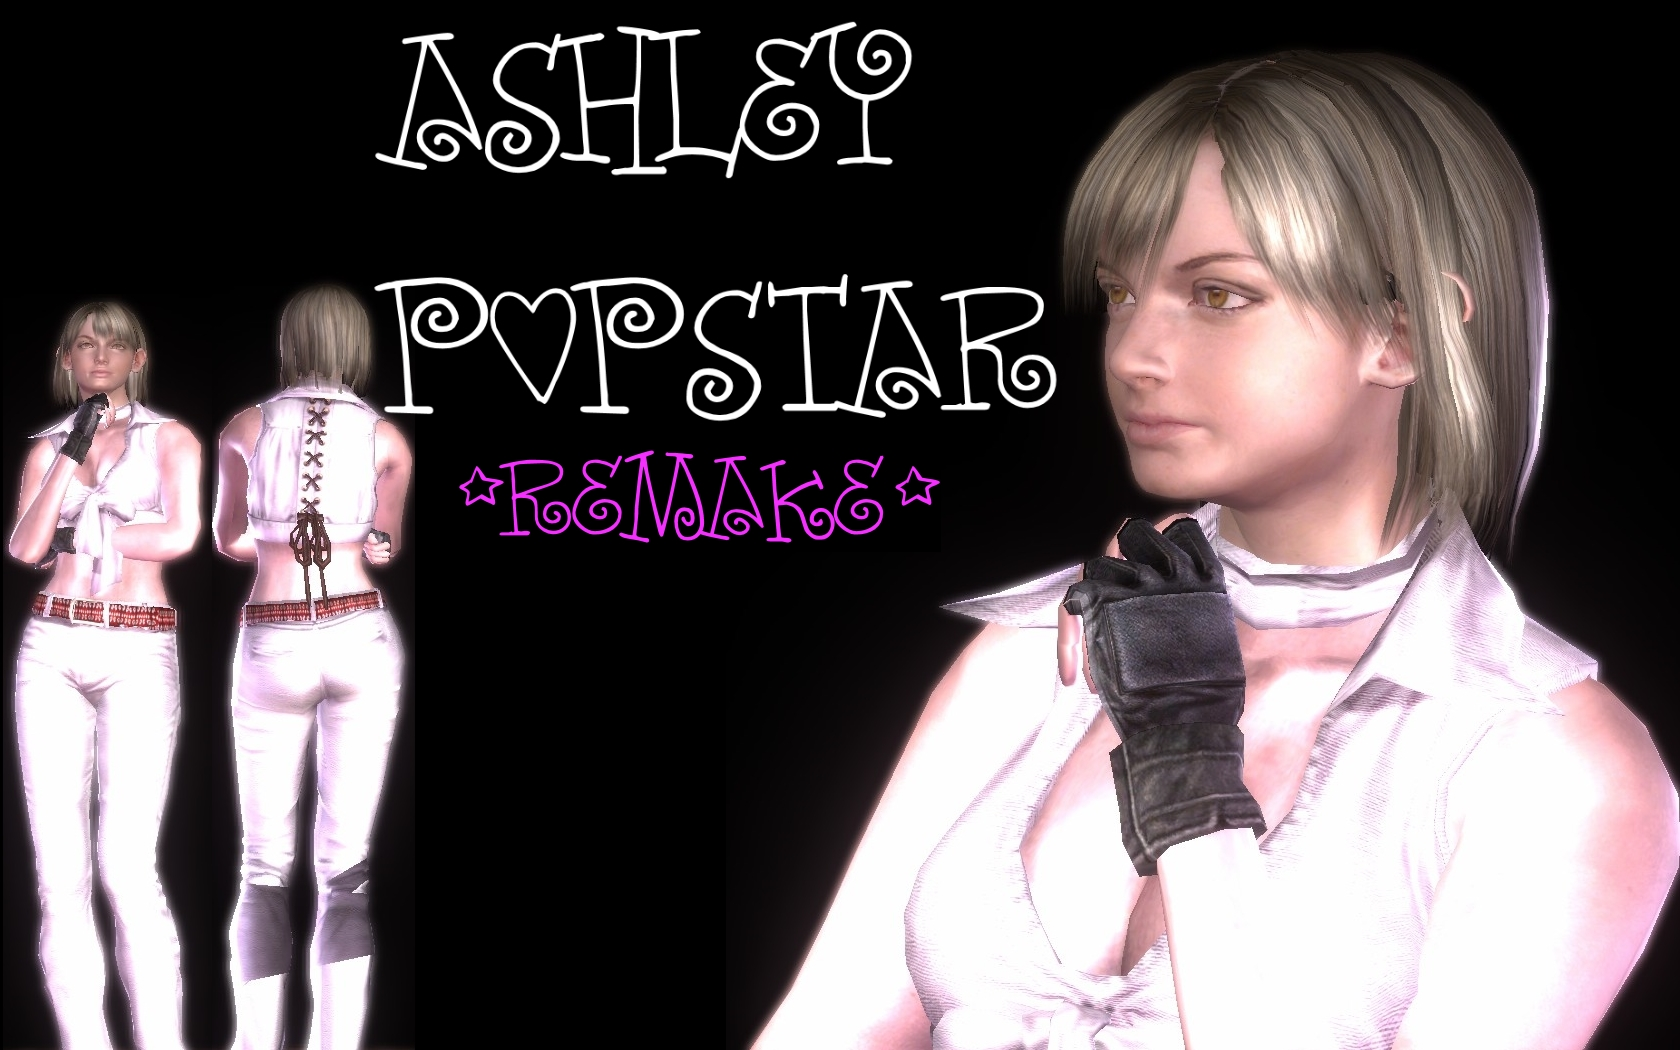 Ashley Popstar Remake 0_11f13b_8d7d9a6b_orig